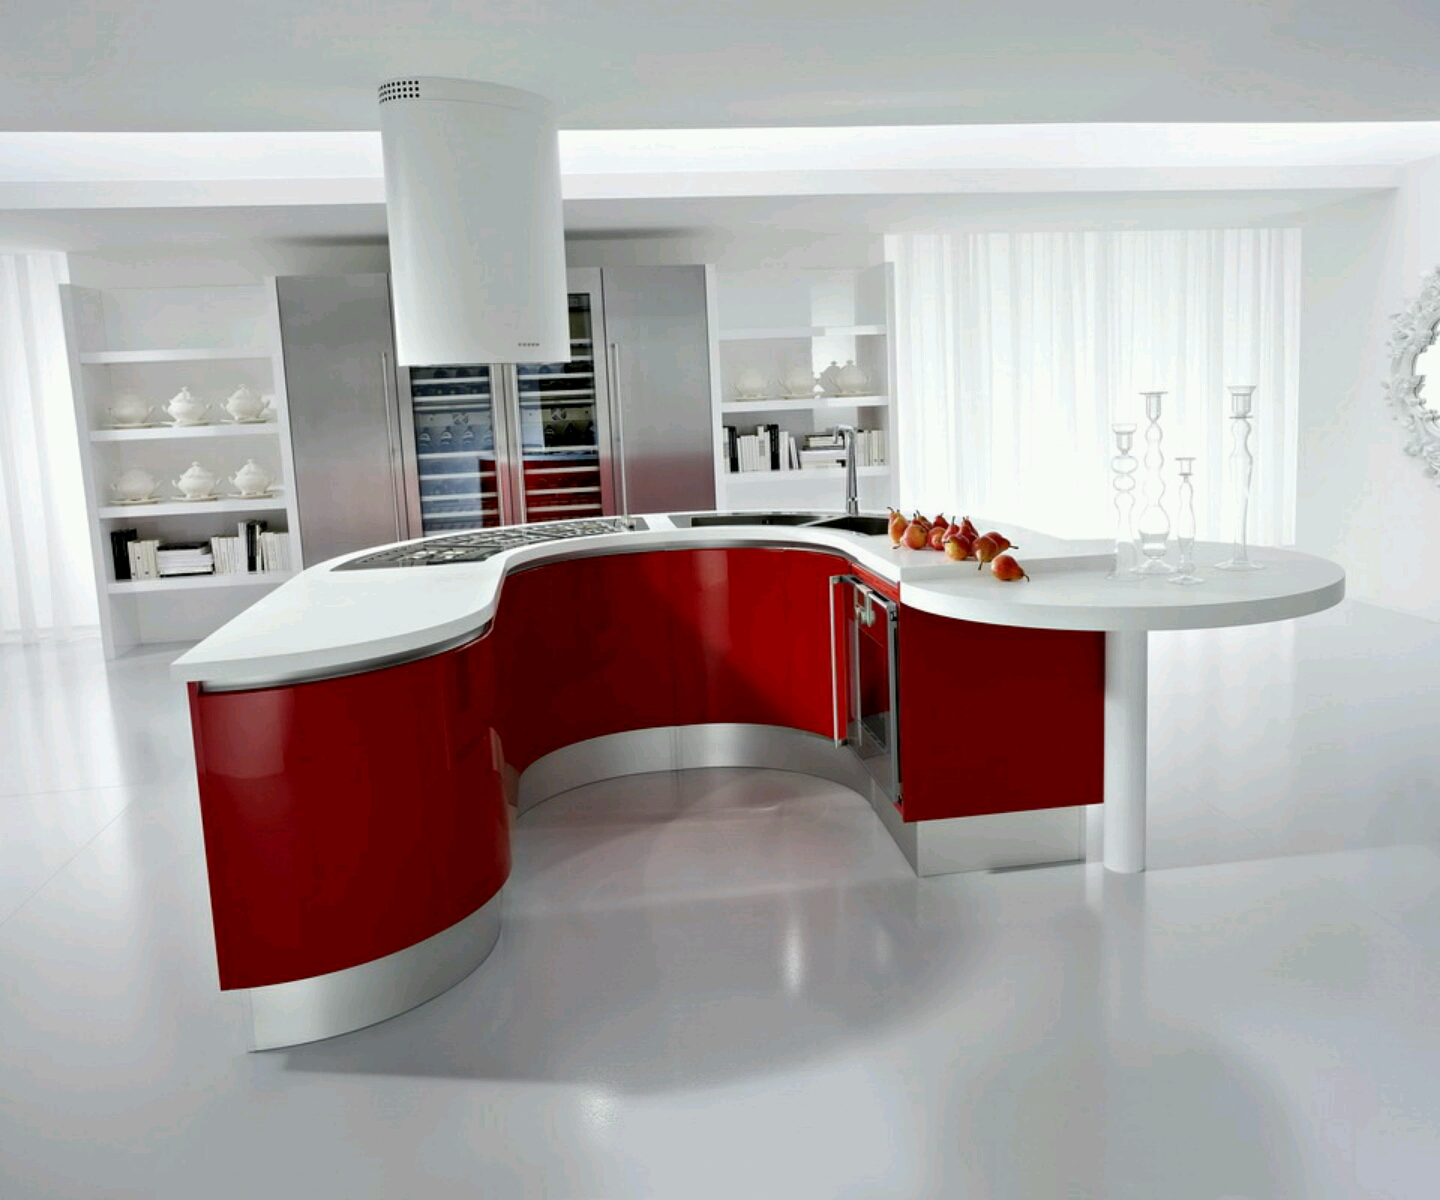 Modern kitchen cabinets designs ideas furniture gallery for Modern kitchen cabinet designs